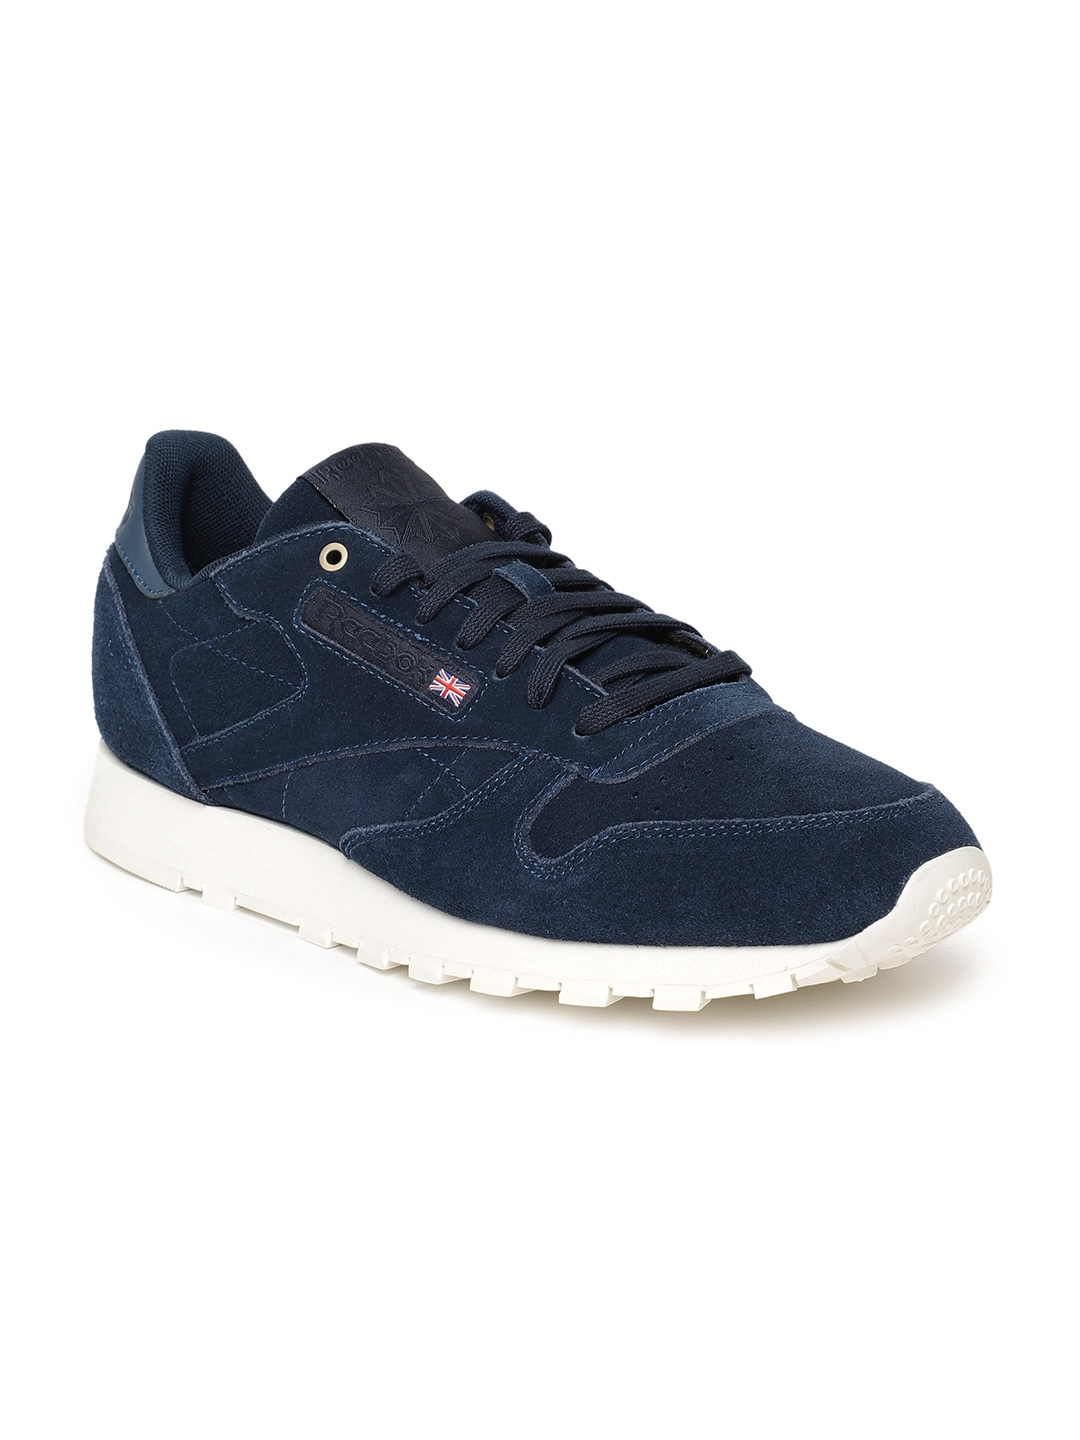 4293ce4a41a675 Buy Reebok Classic Men Navy CL Suede MCC Blue Sneakers - Casual ...